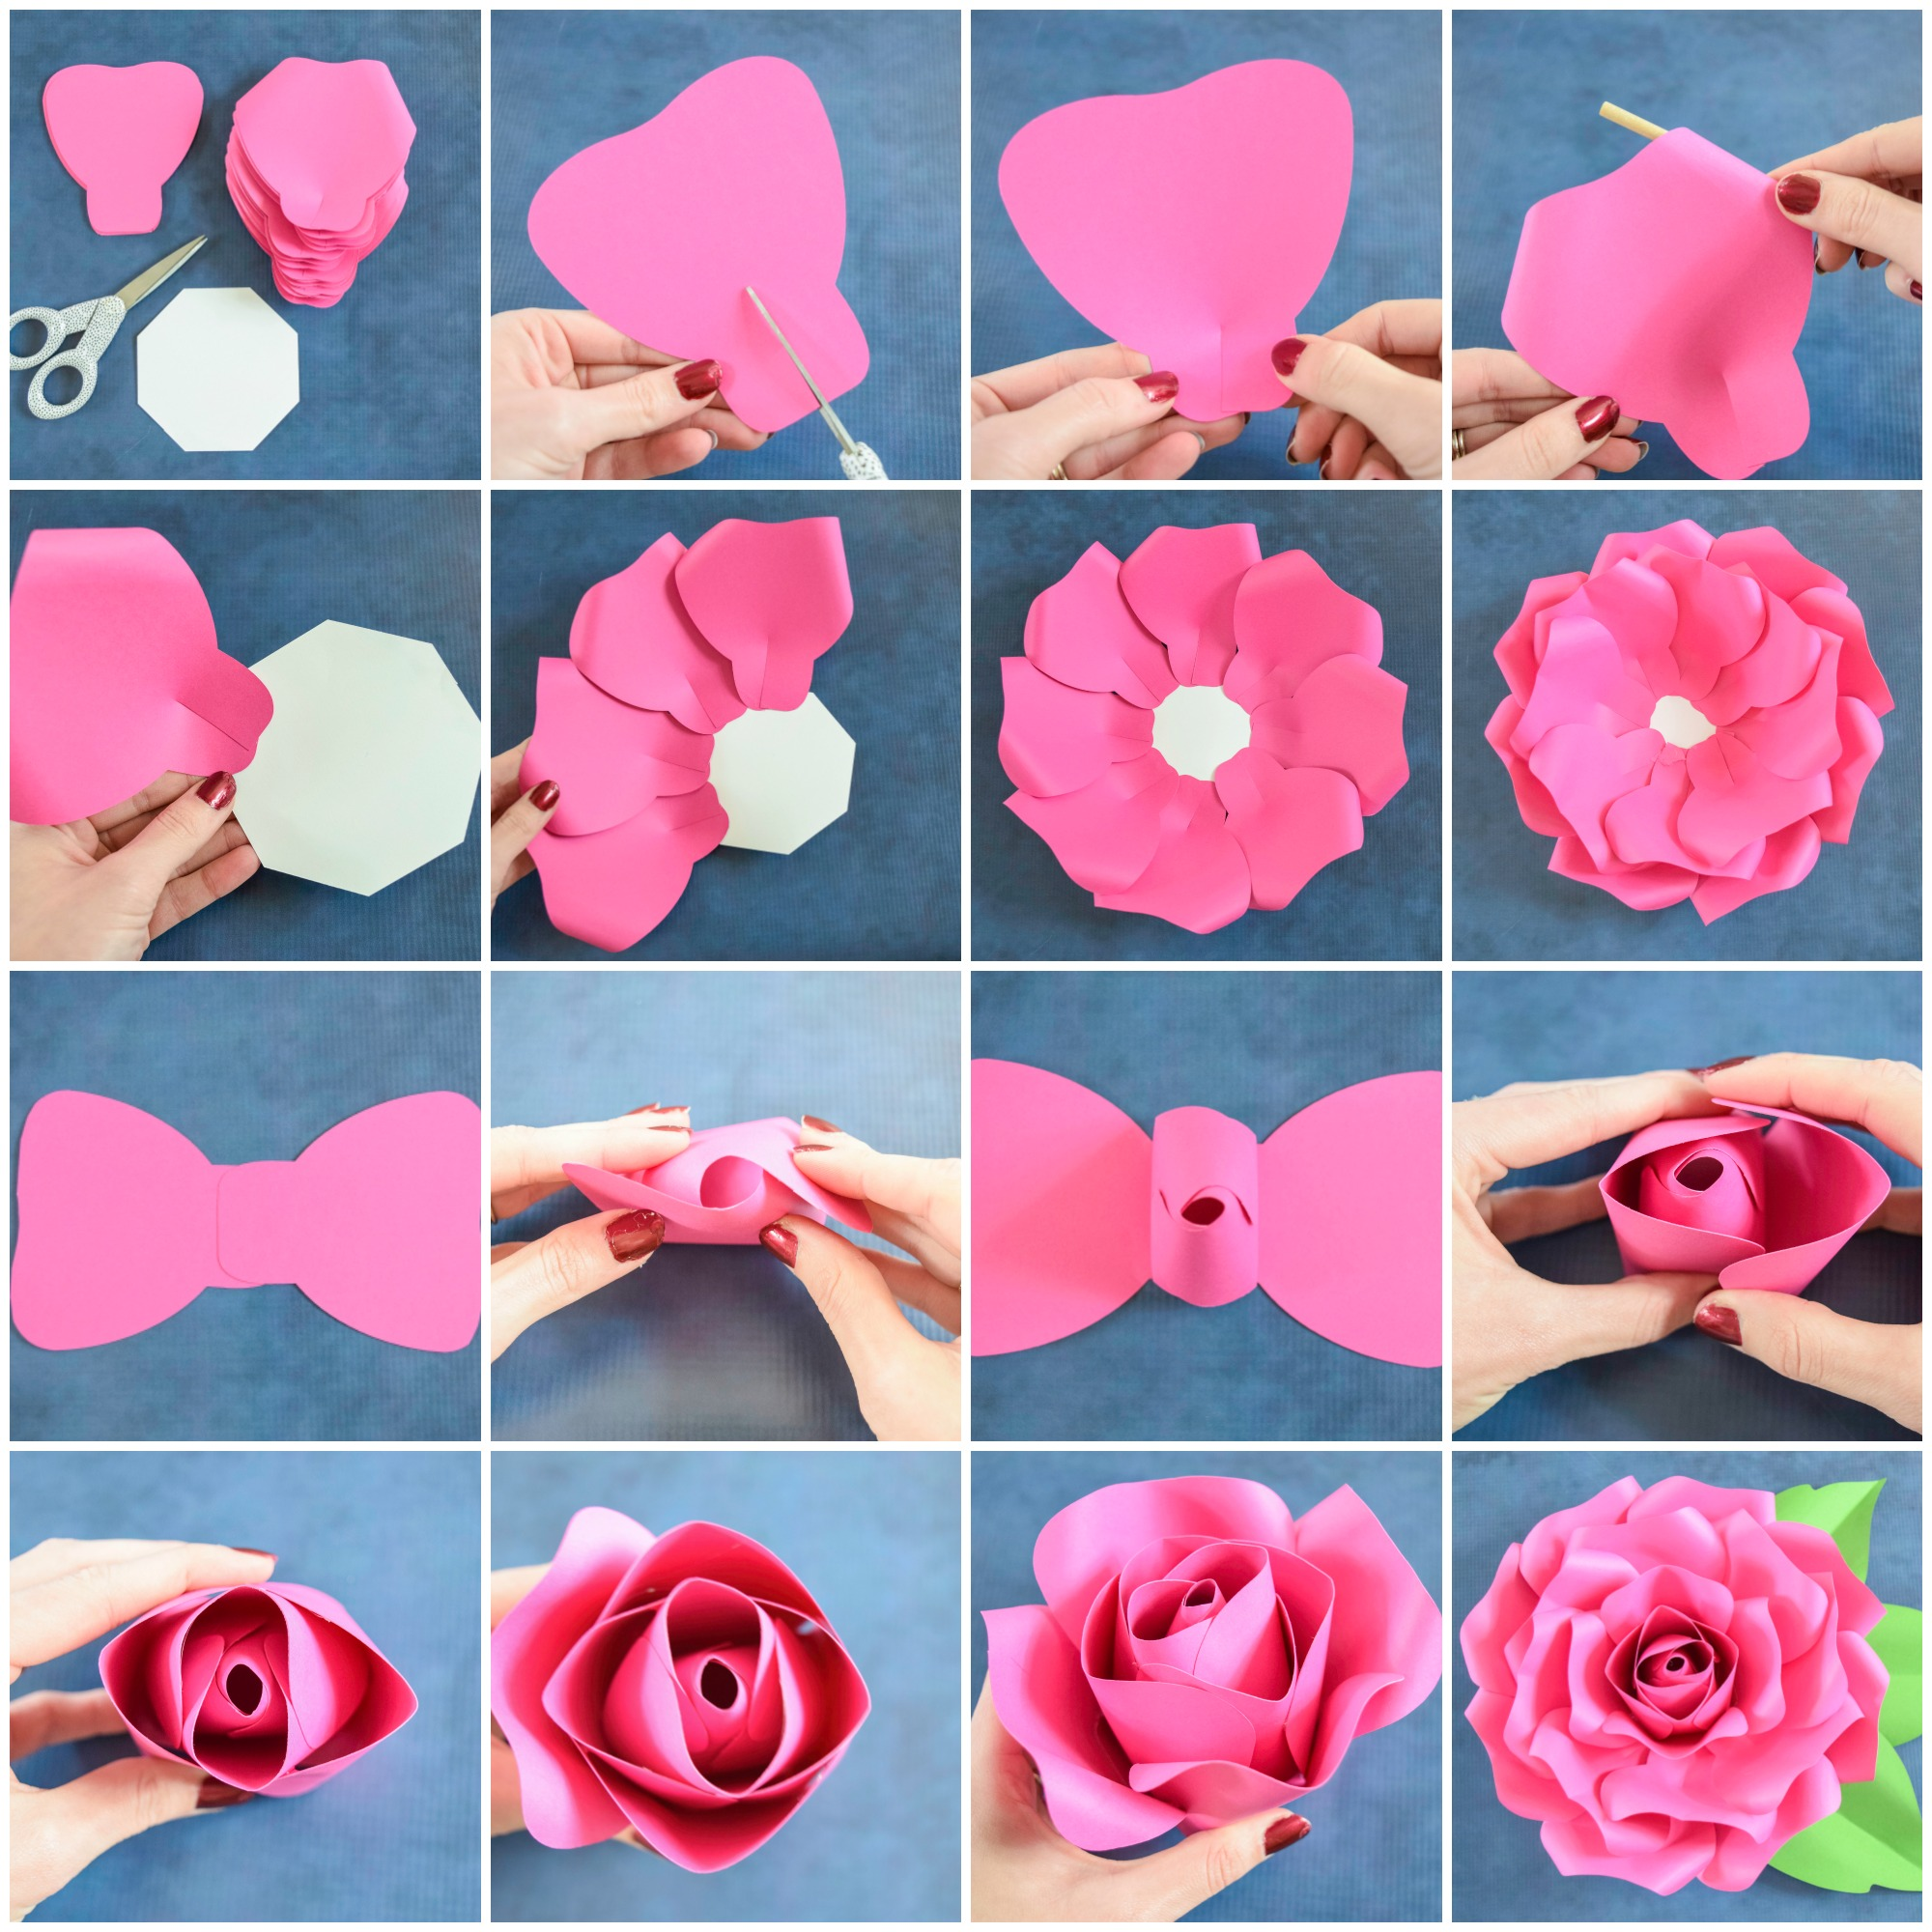 Giant paper flowers how to make paper garden roses with step by step grab the extra large alora rose template here and dont forget the small alora recently released here mightylinksfo